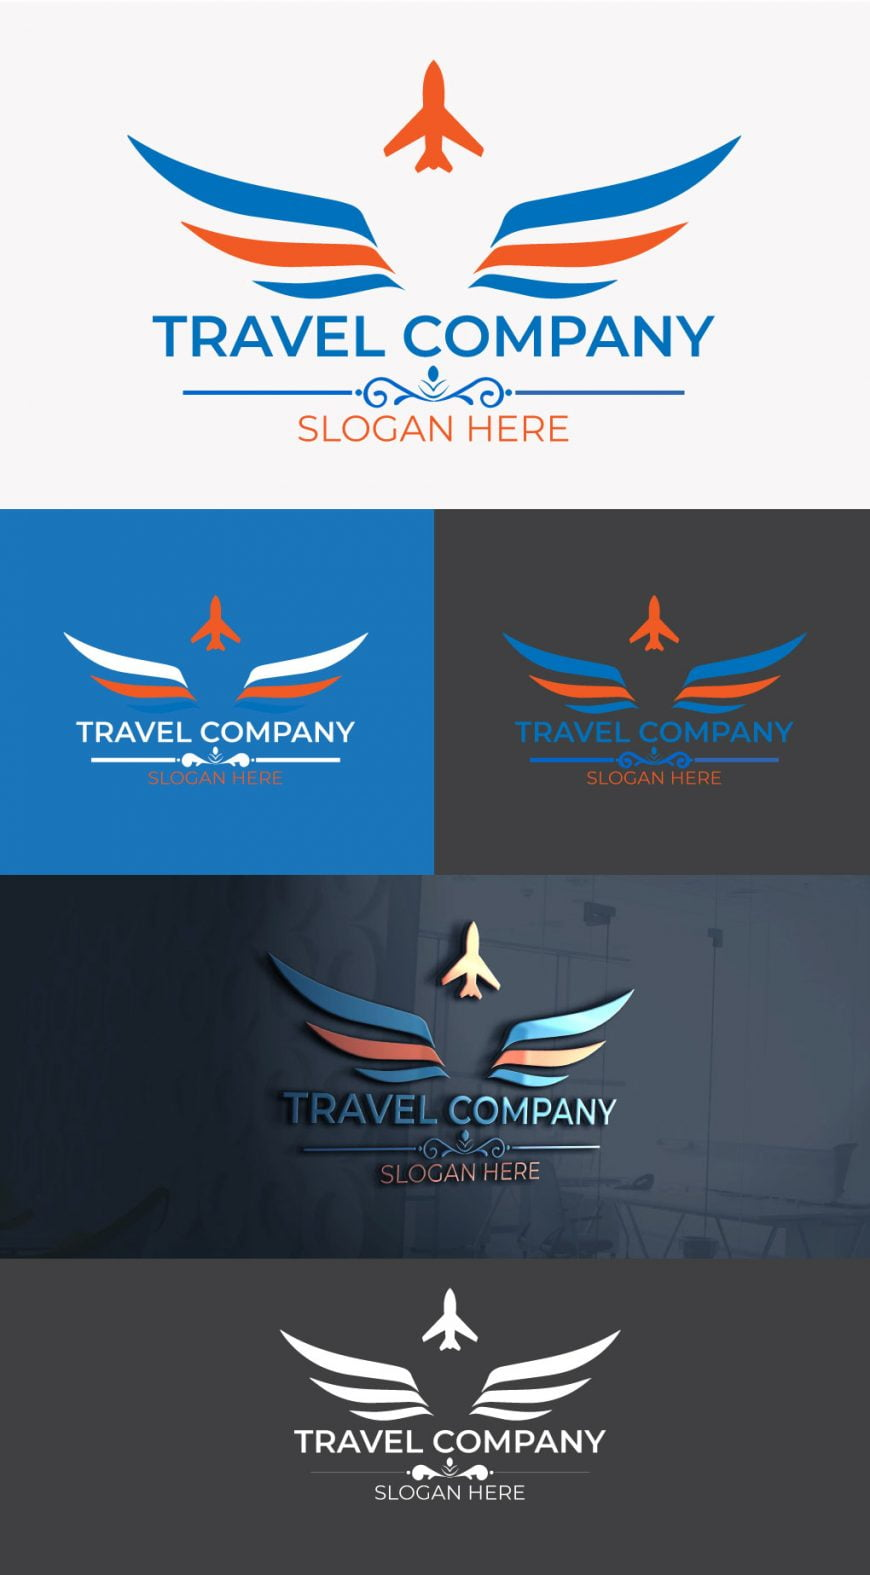 travel-logo-free-template-2